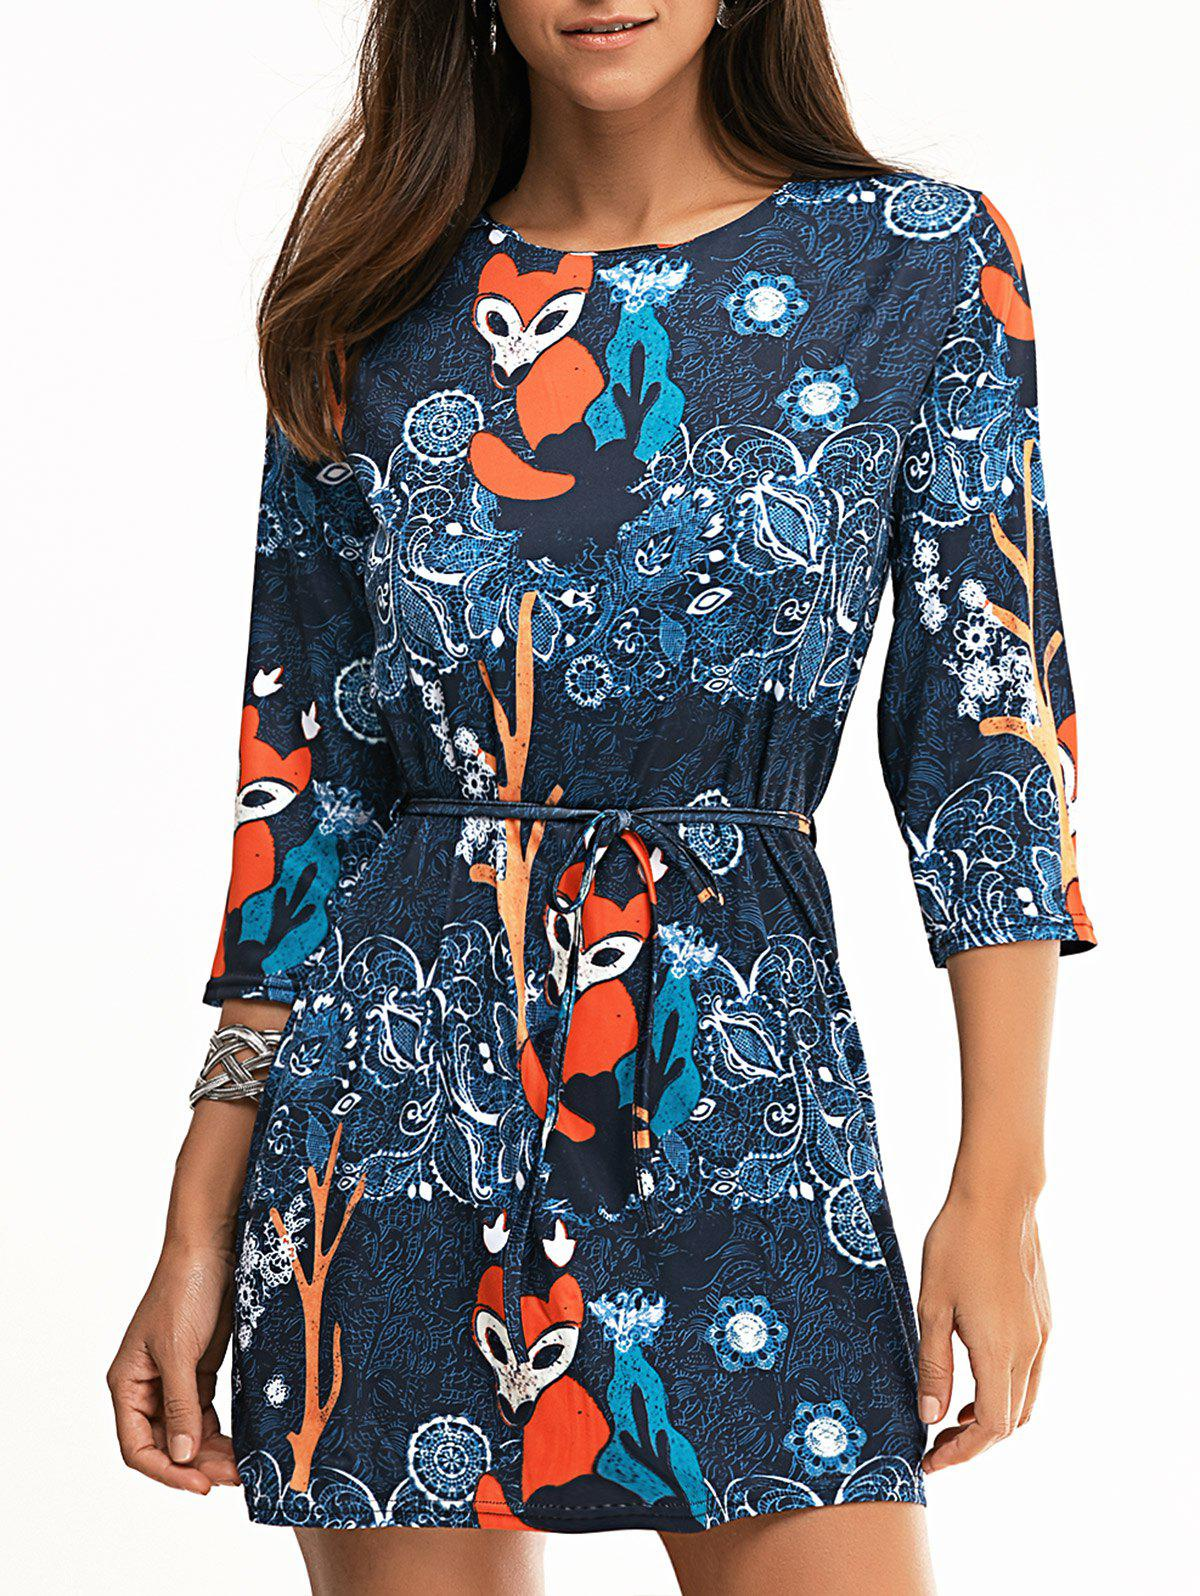 Jewel Neck 3/4 Sleeve Fox Dress - CADETBLUE XL